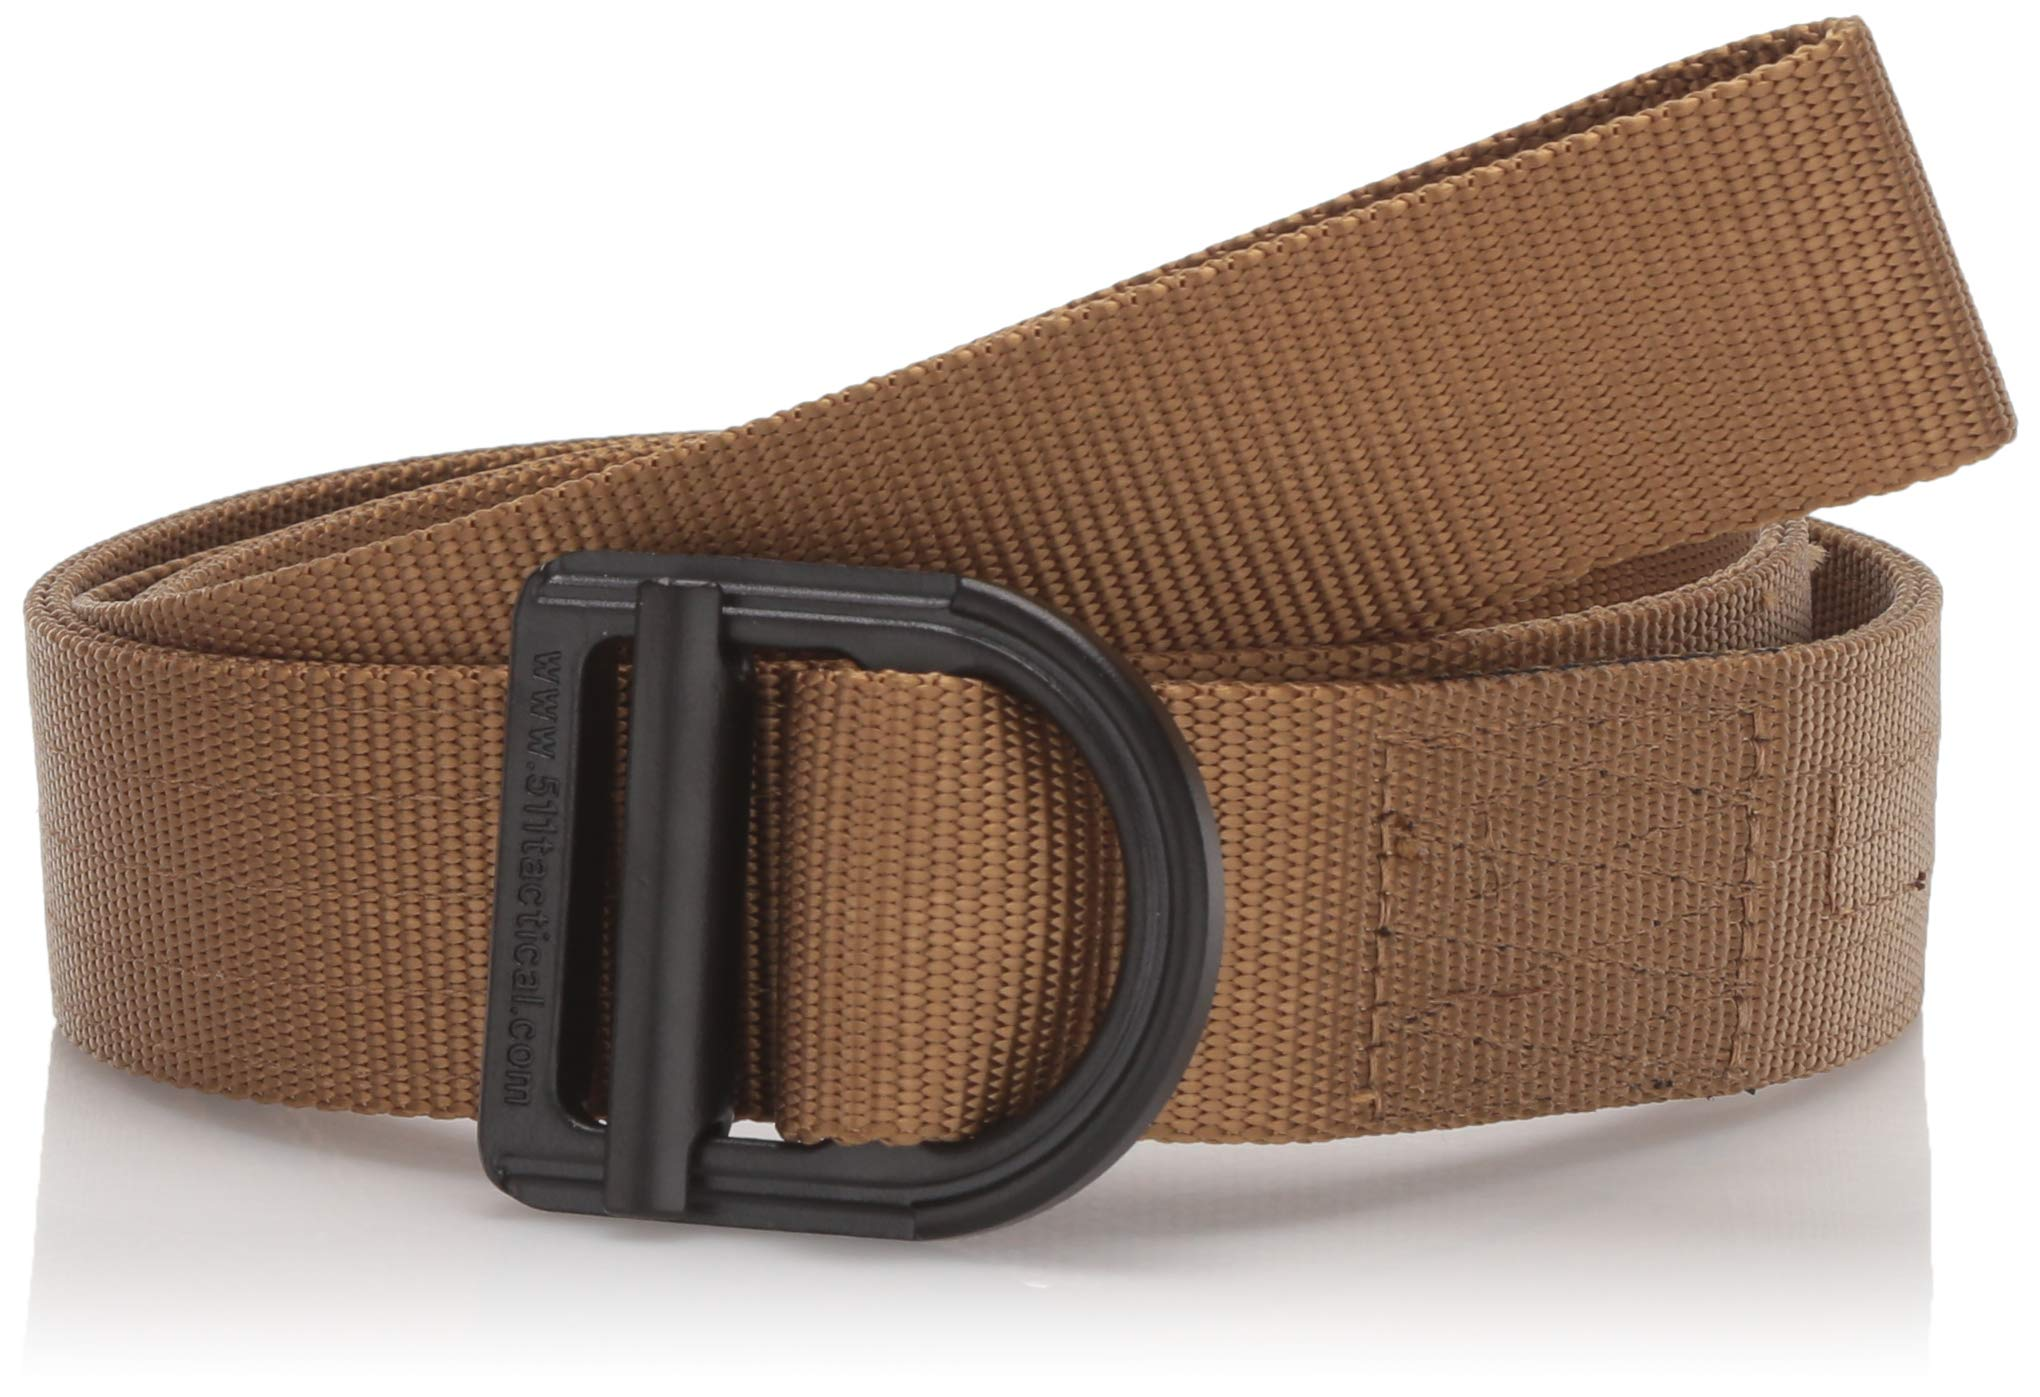 5.11  Trainer 1.5'' Tactical Belt, Heavy Duty for Military and Law Enforcement, Style 59409, Coyote (120), 3XL by 5.11